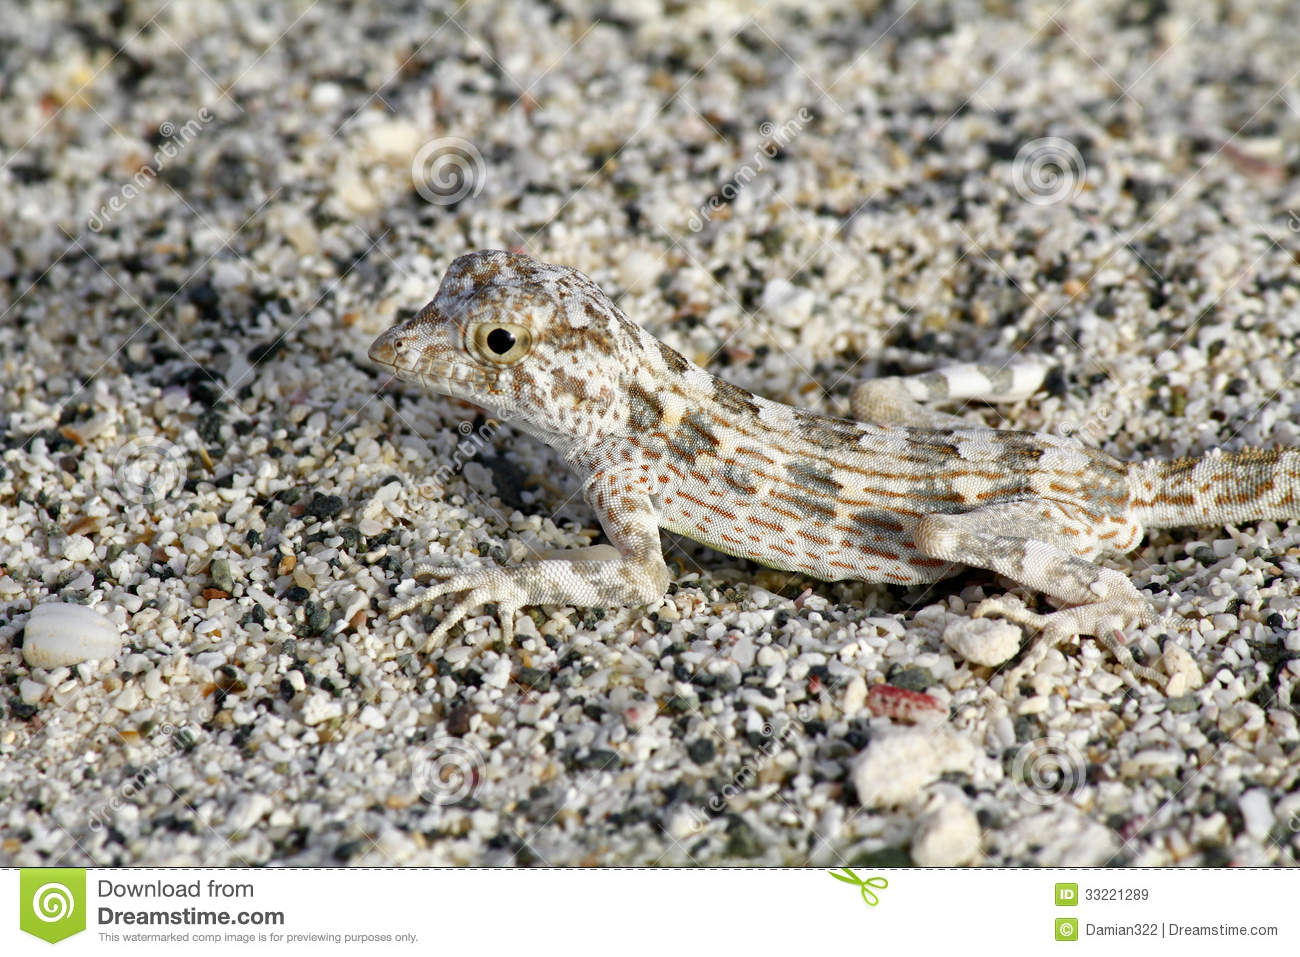 Camouflage/Owl And Lizards - Lessons - TES Teach